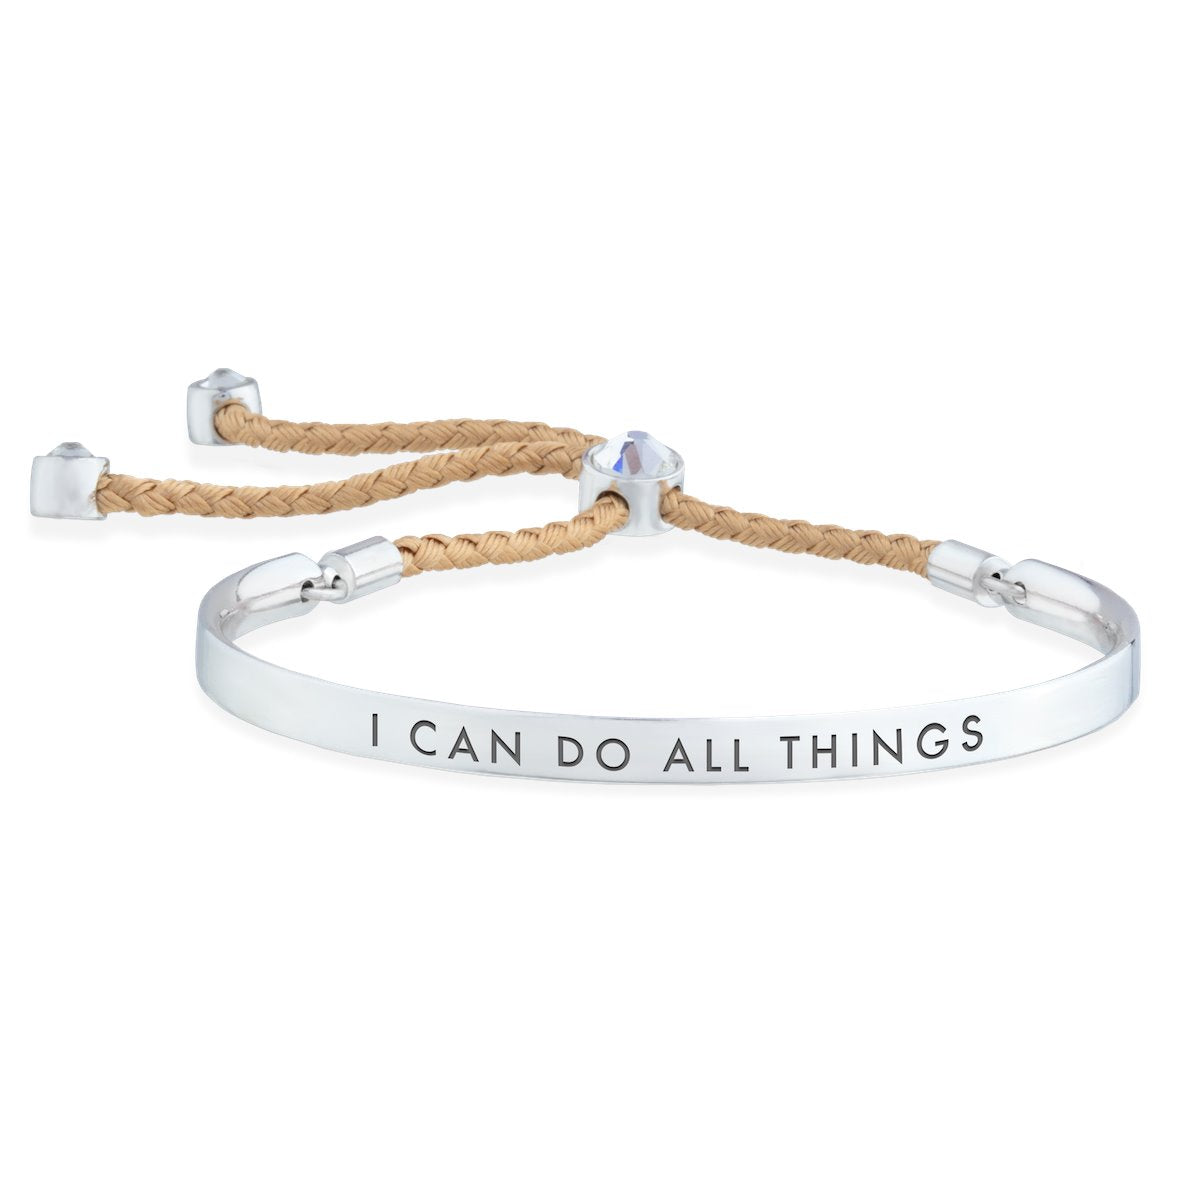 I Can Do All Things – Words of Empowerment Bracelet forevercrystals